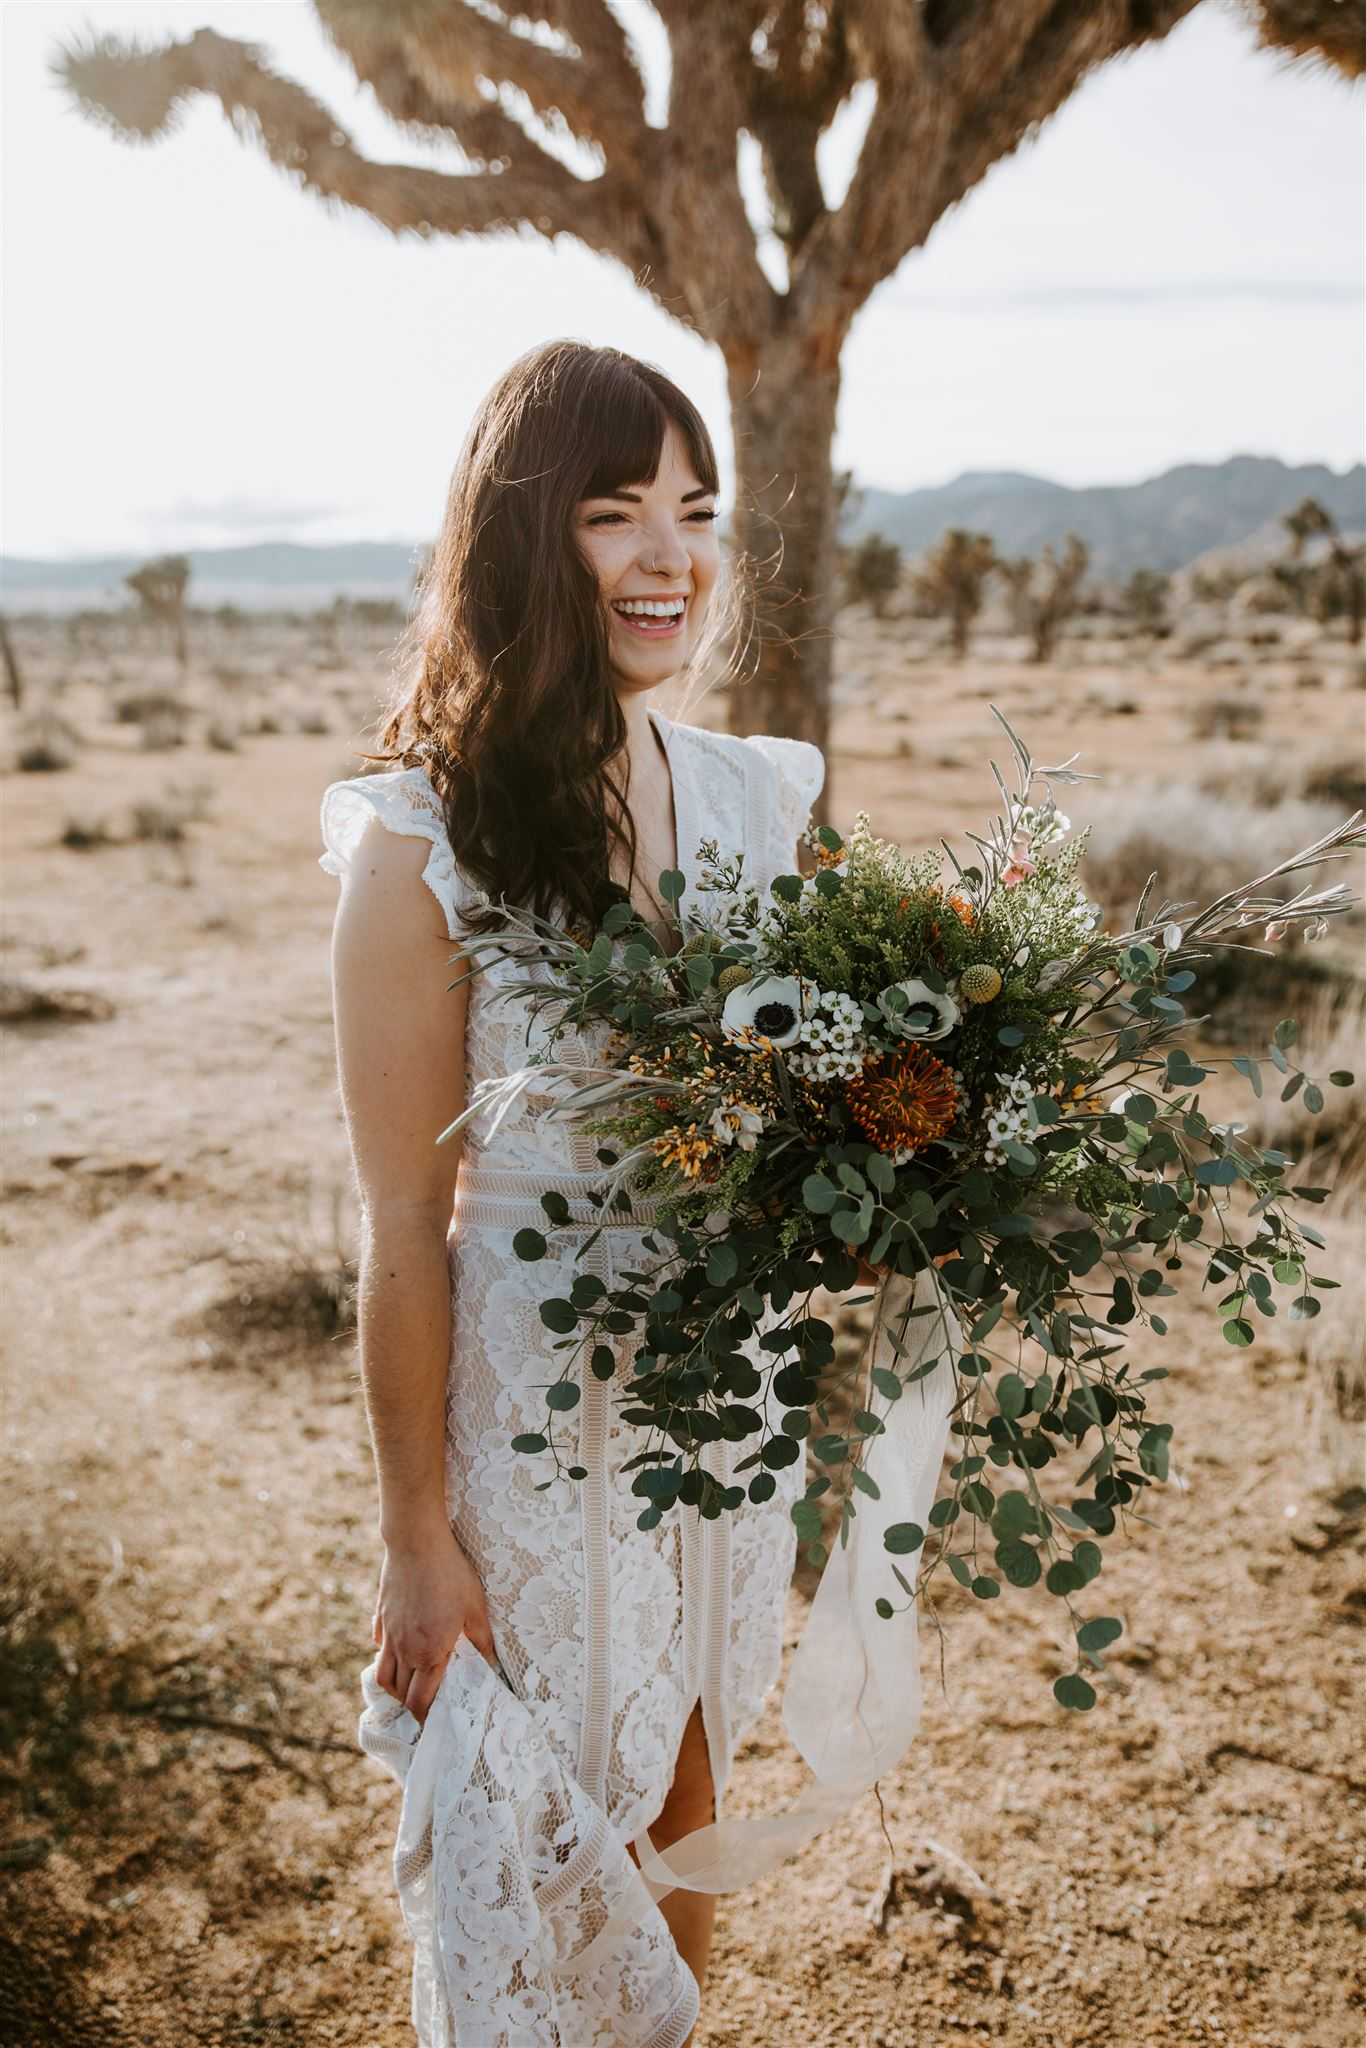 Joshua Tree CA Elopement Wedding  Photographer May Iosotaluno 31.jpg